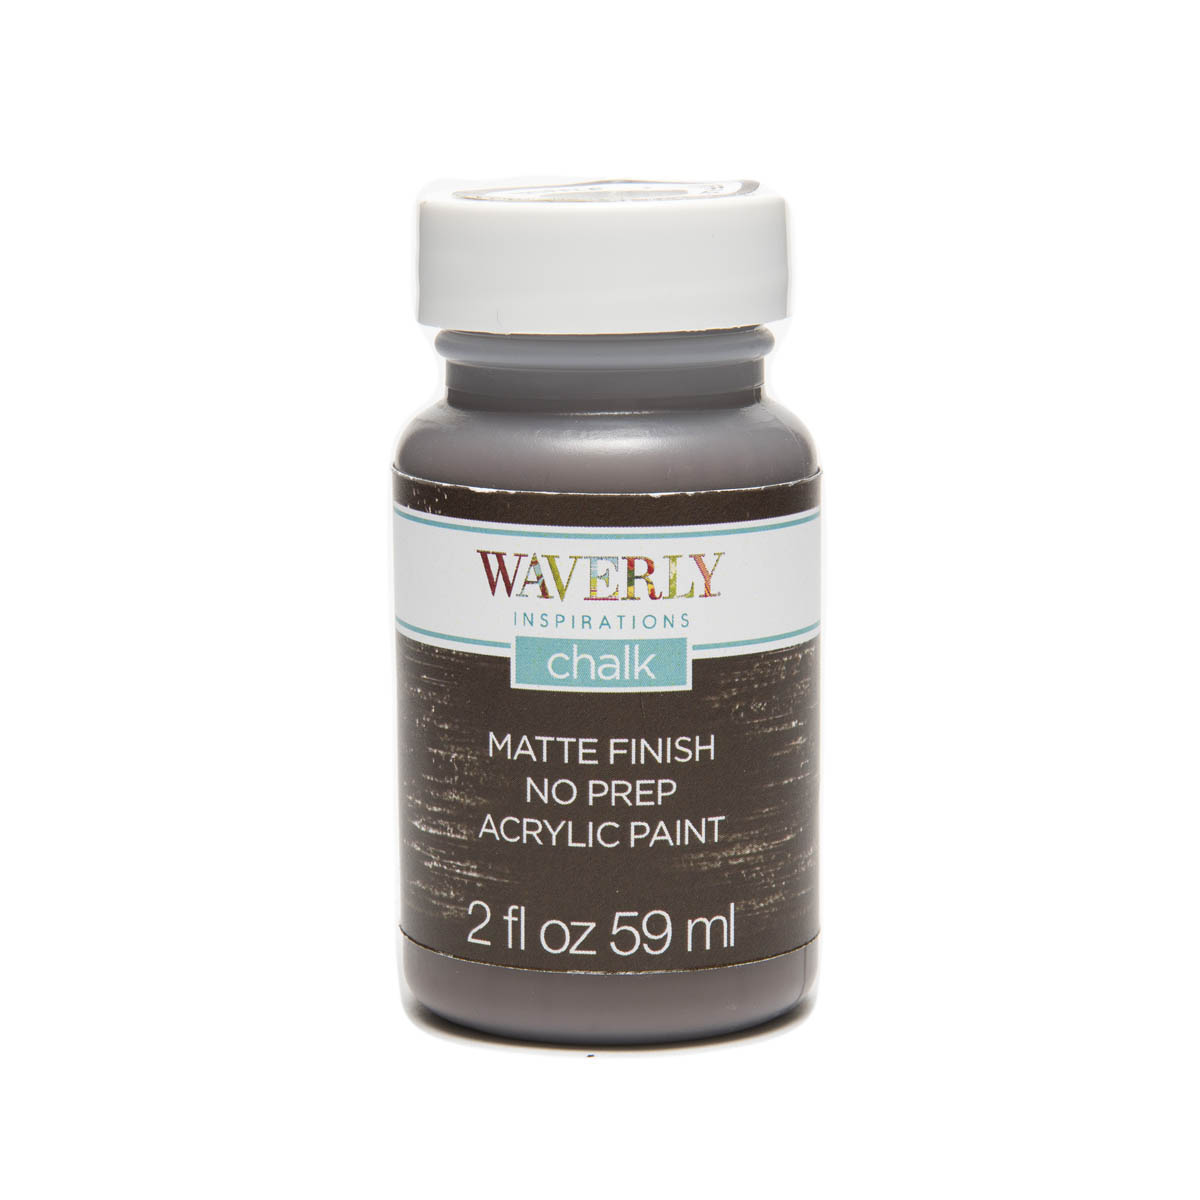 Waverly ® Inspirations Chalk Finish Acrylic Paint - Truffle, 2 oz.